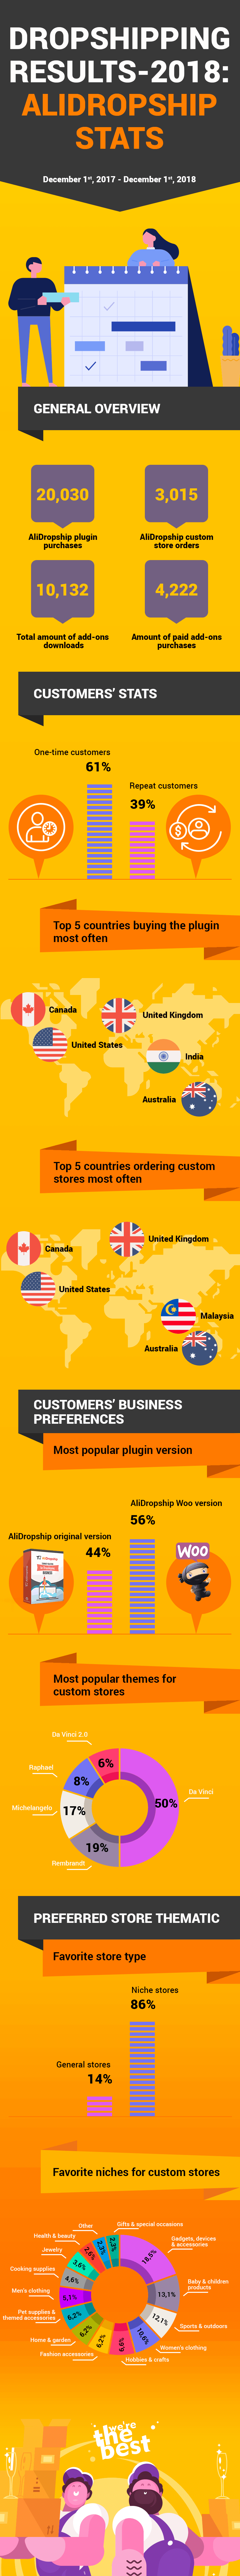 Dropshipping Results Of 2018: All-Inclusive eCommerce Infographic By AliDropship